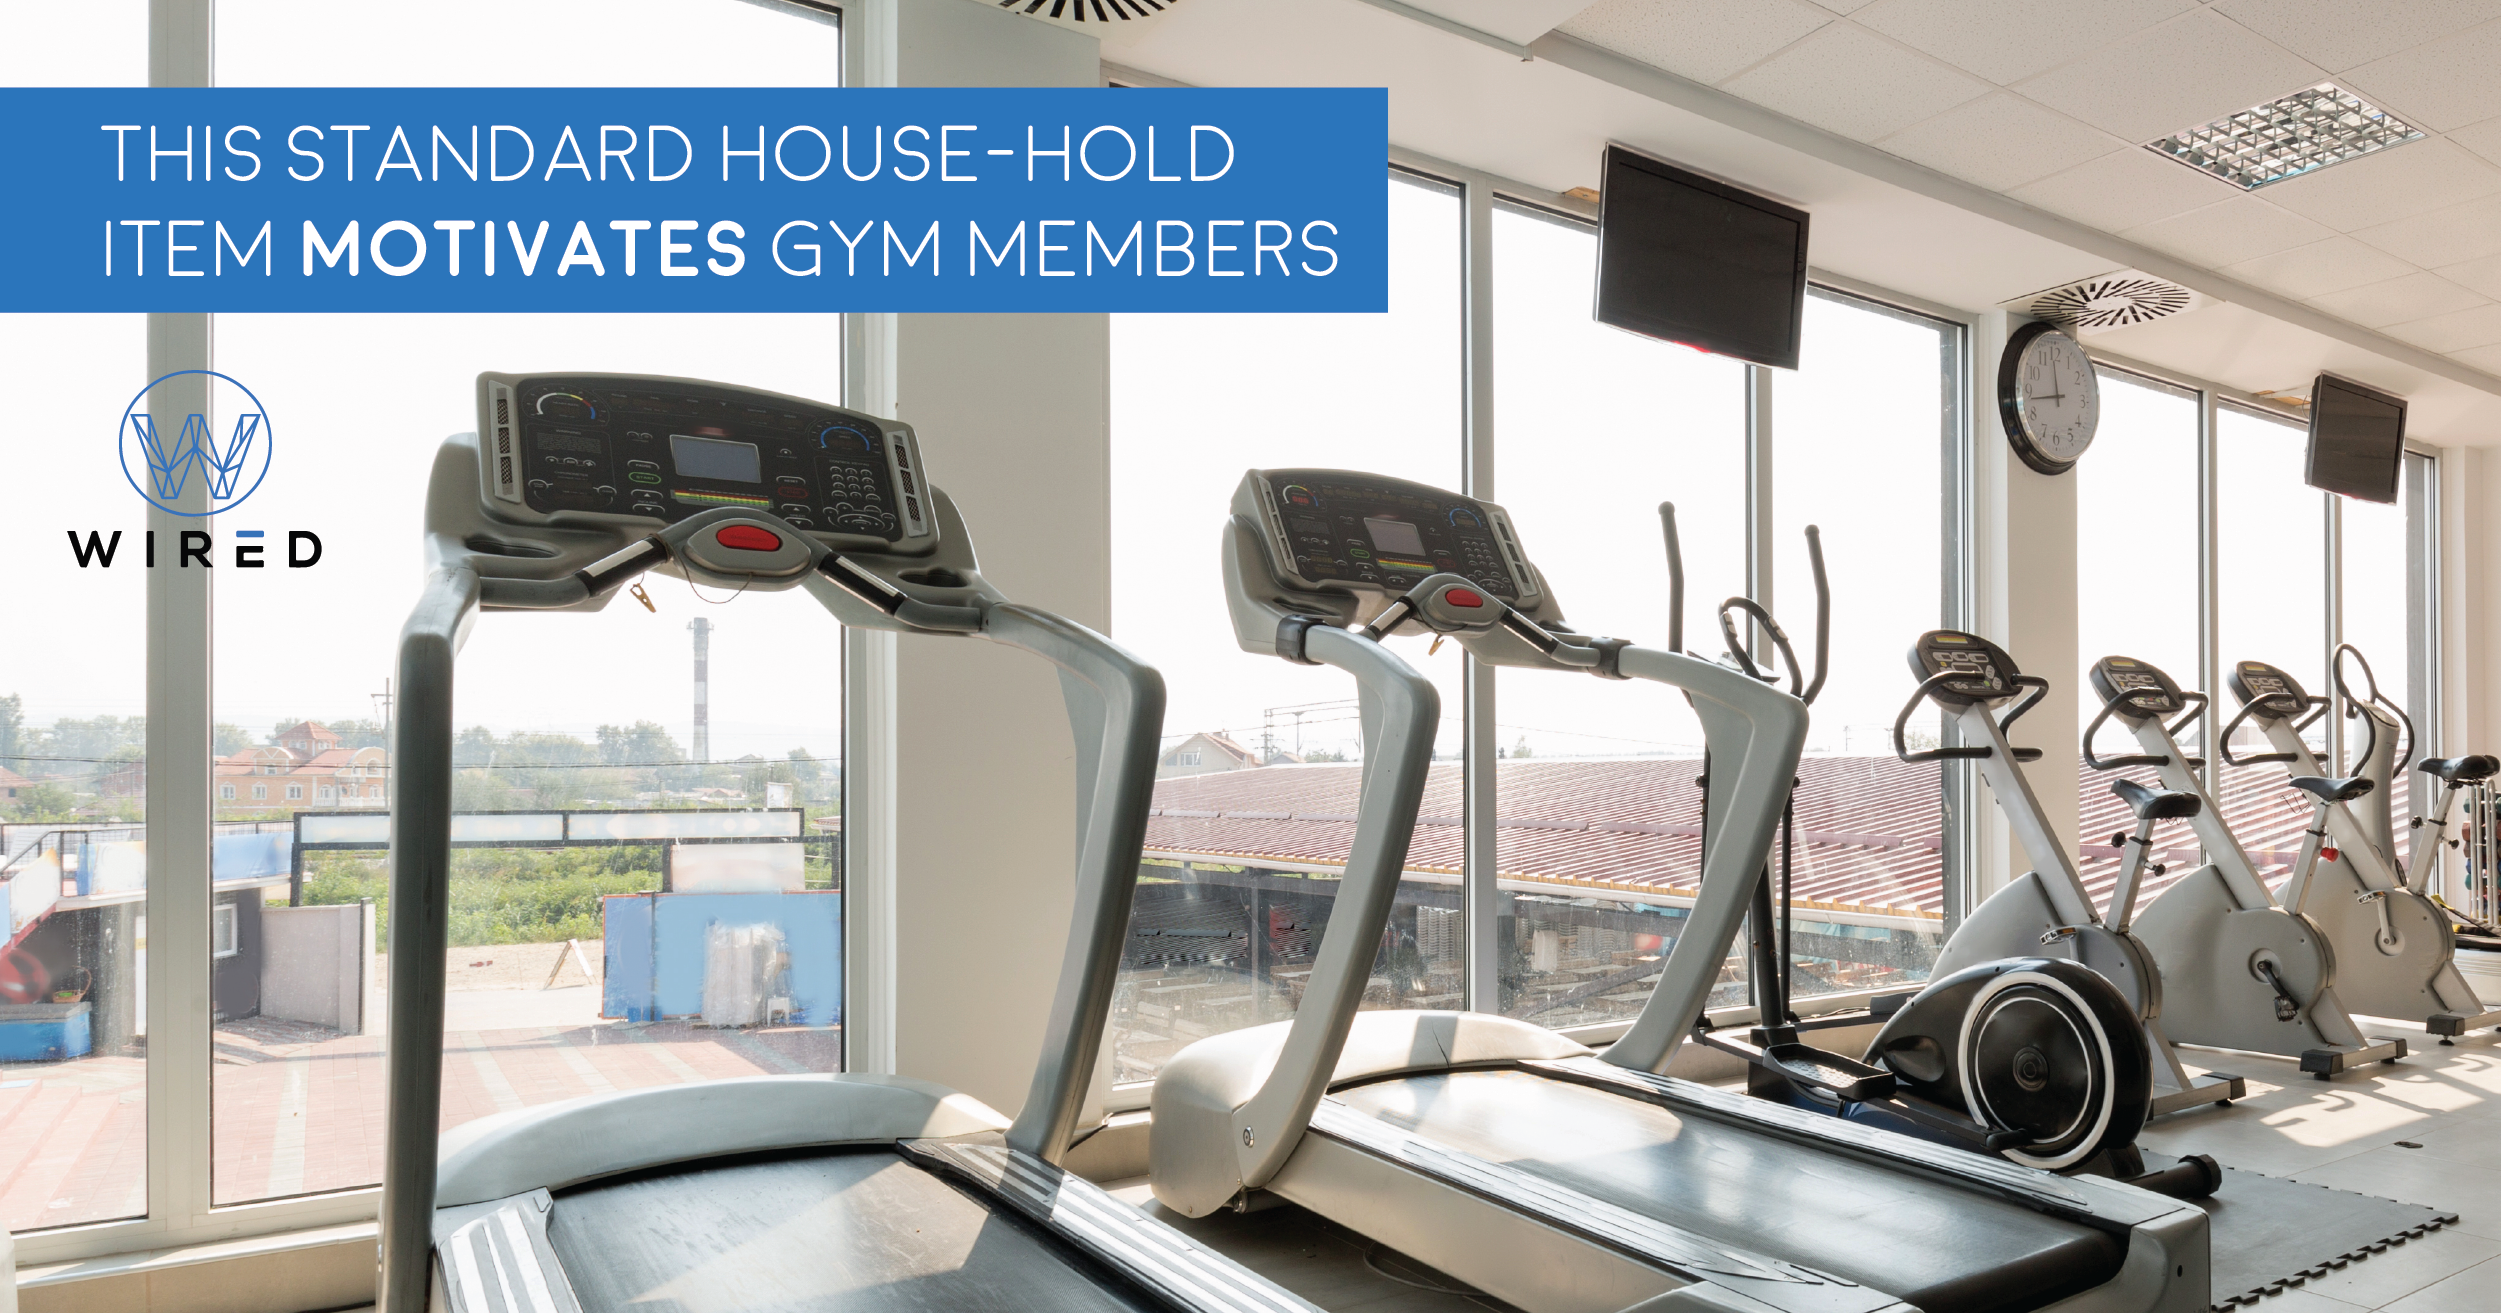 This standard house hold item motivates gym members